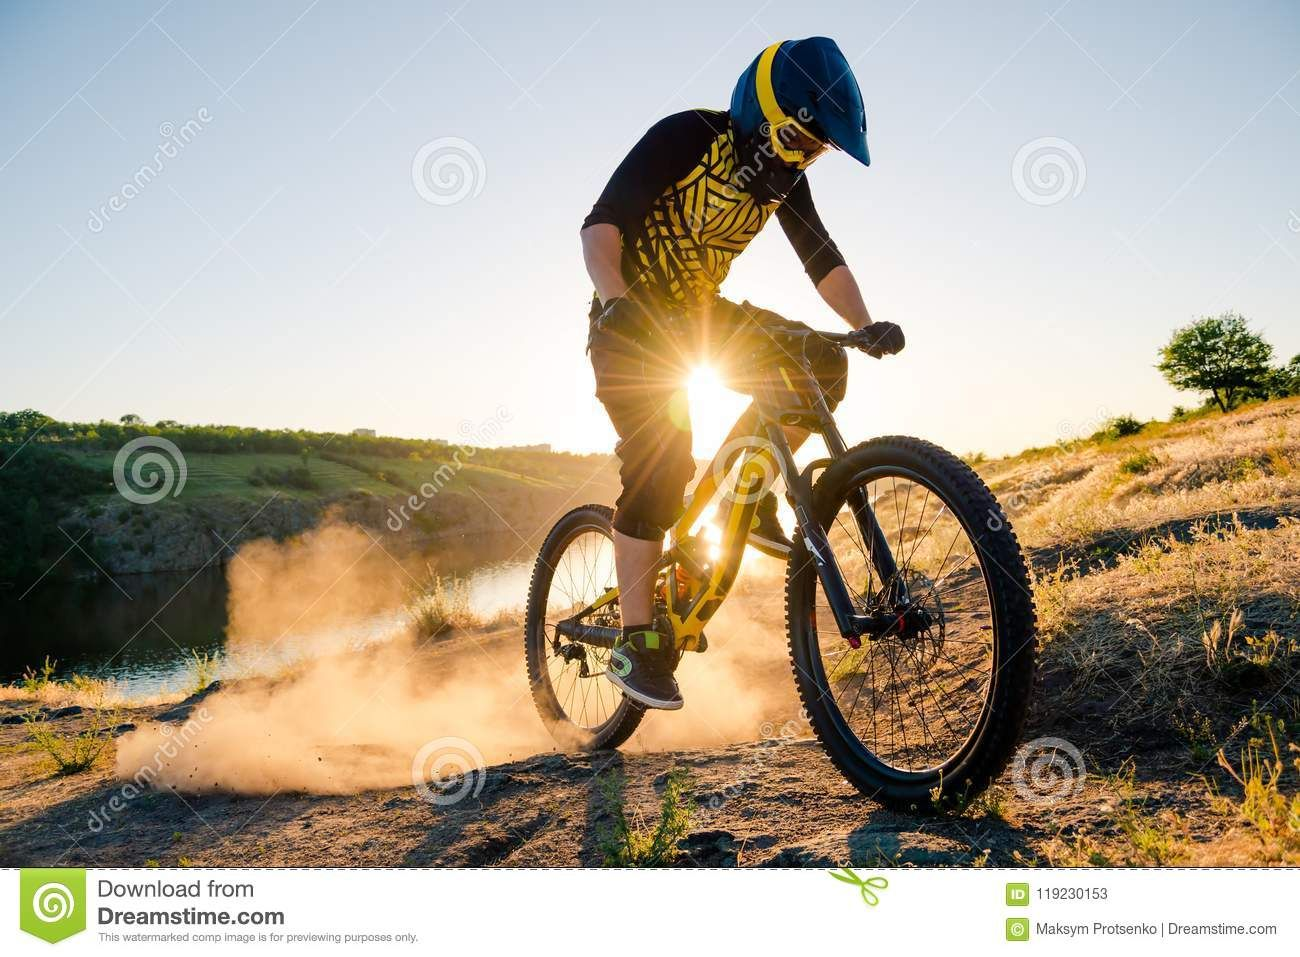 Pin by Dreamstime Stock Photos on Sport is fun, sport is